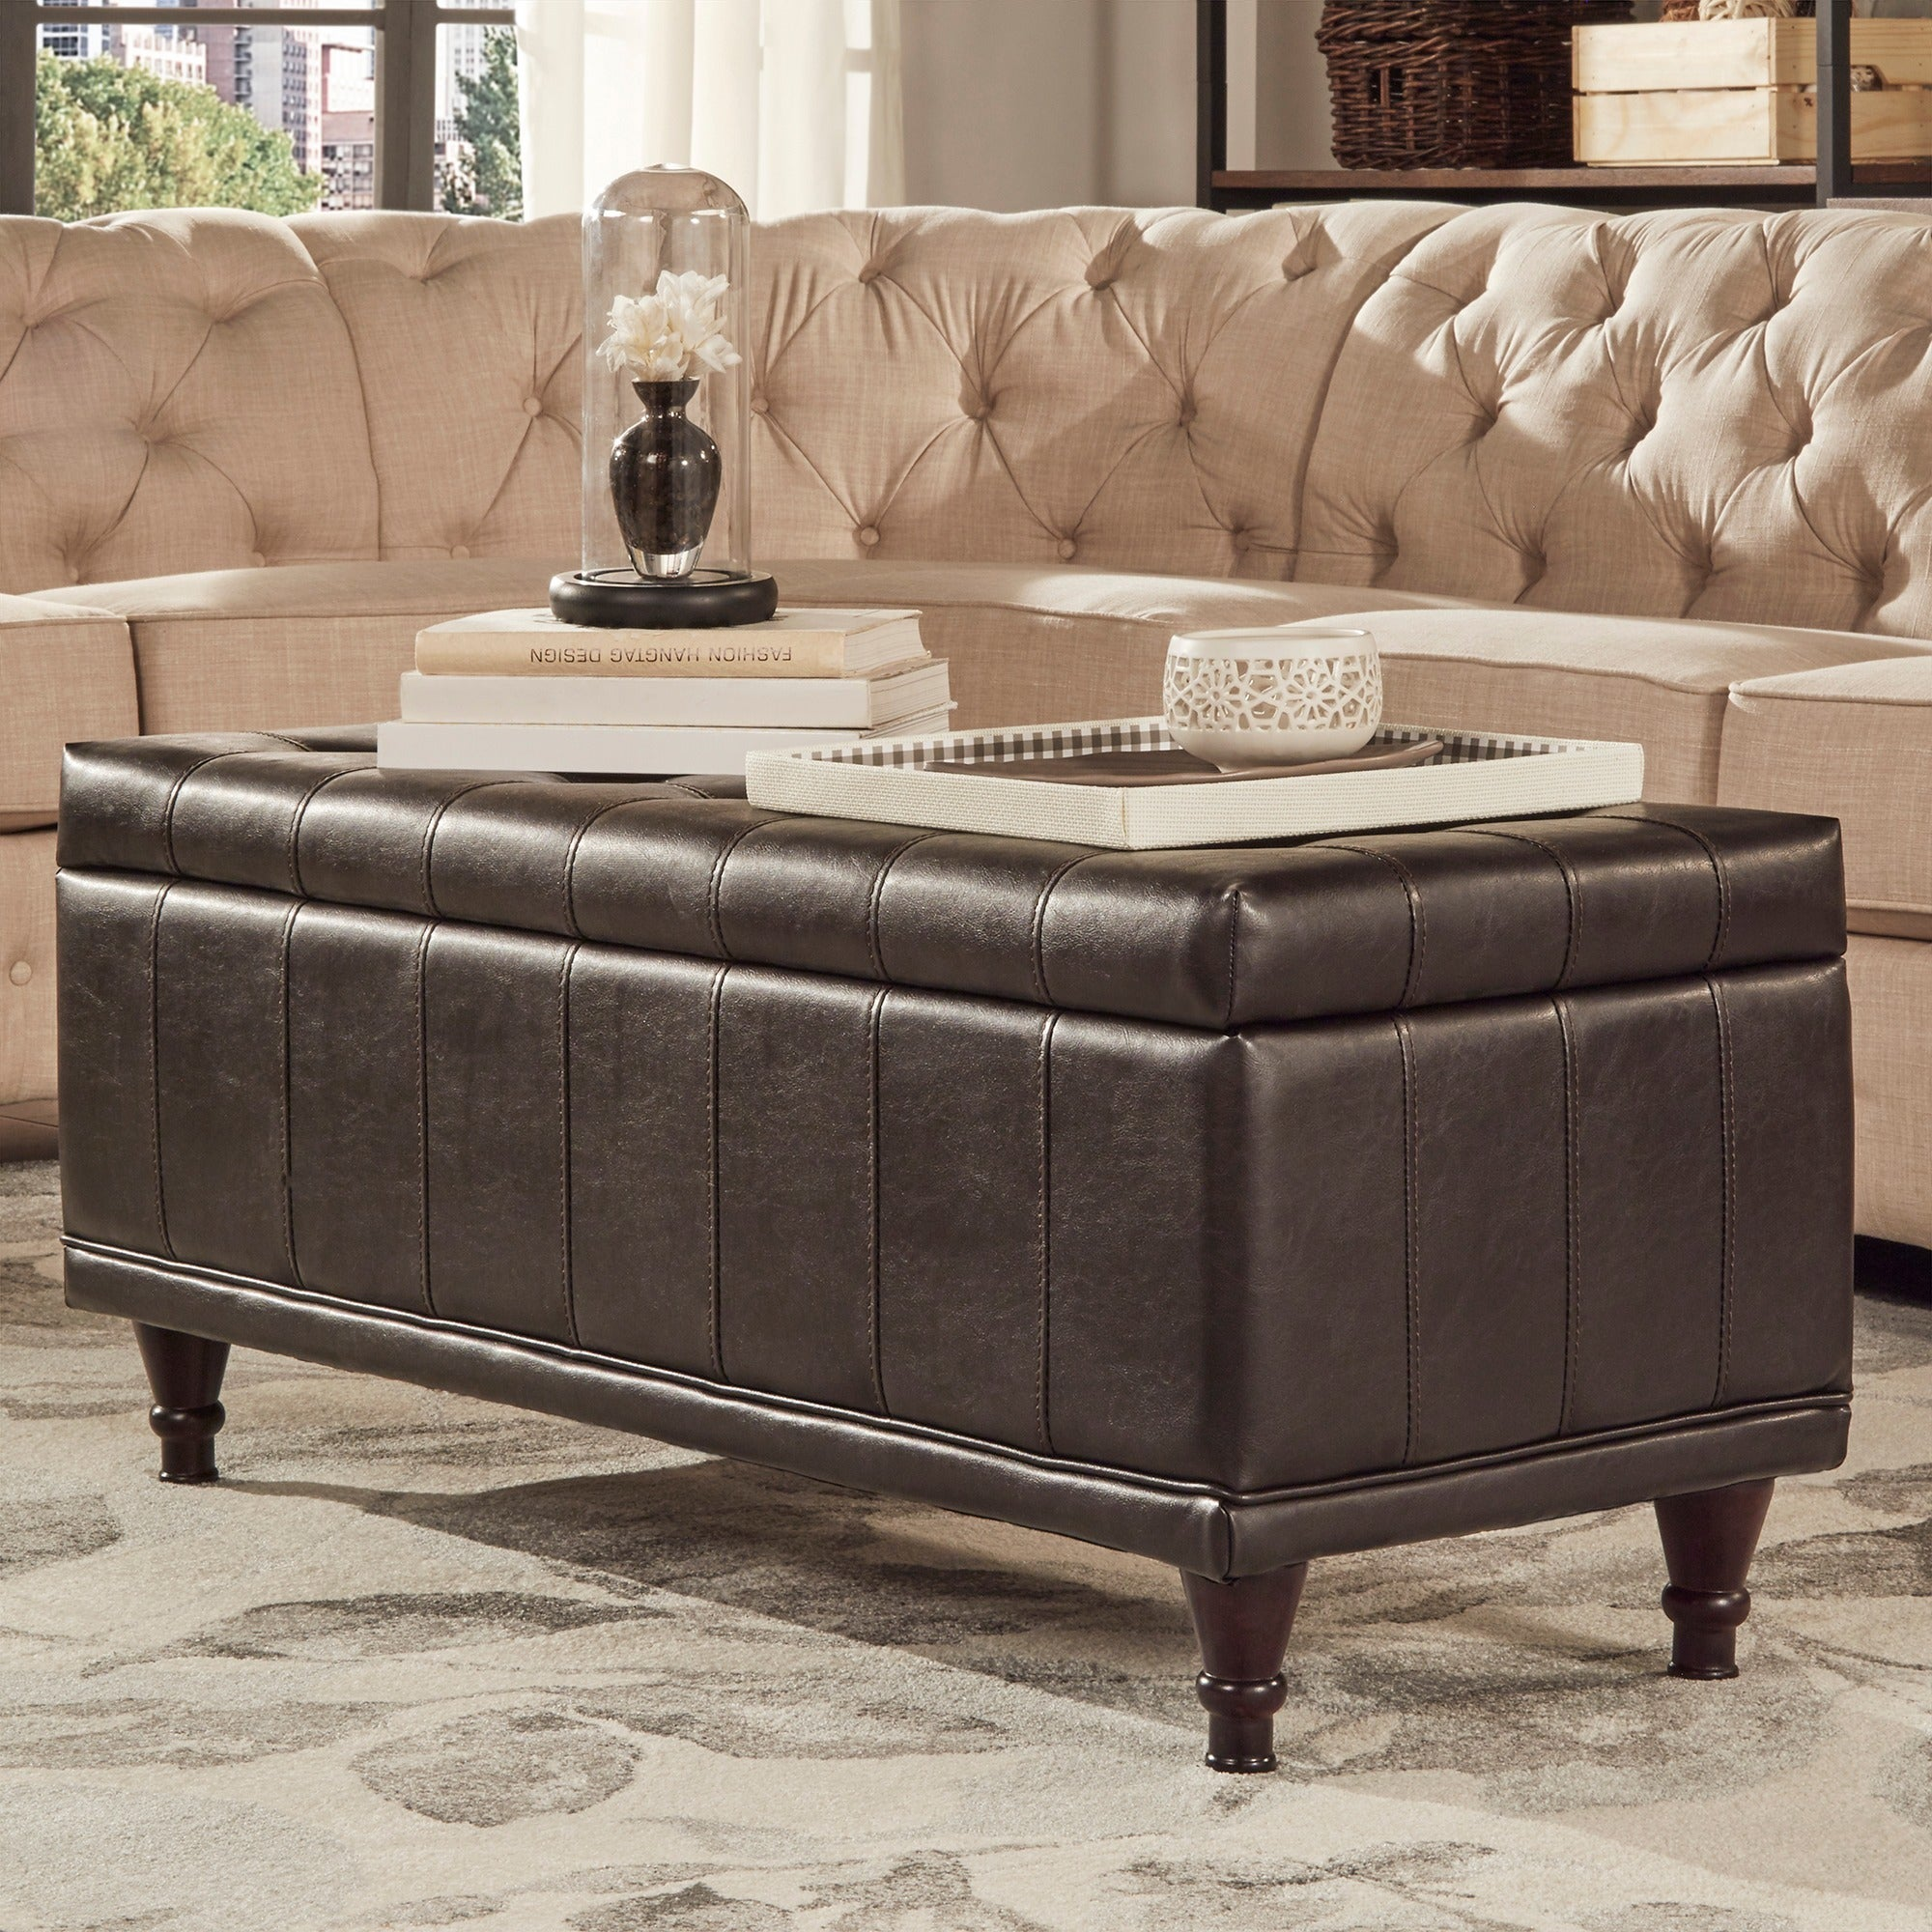 St Ives Lift Top Faux Leather Tufted Storage Bench by iNS...